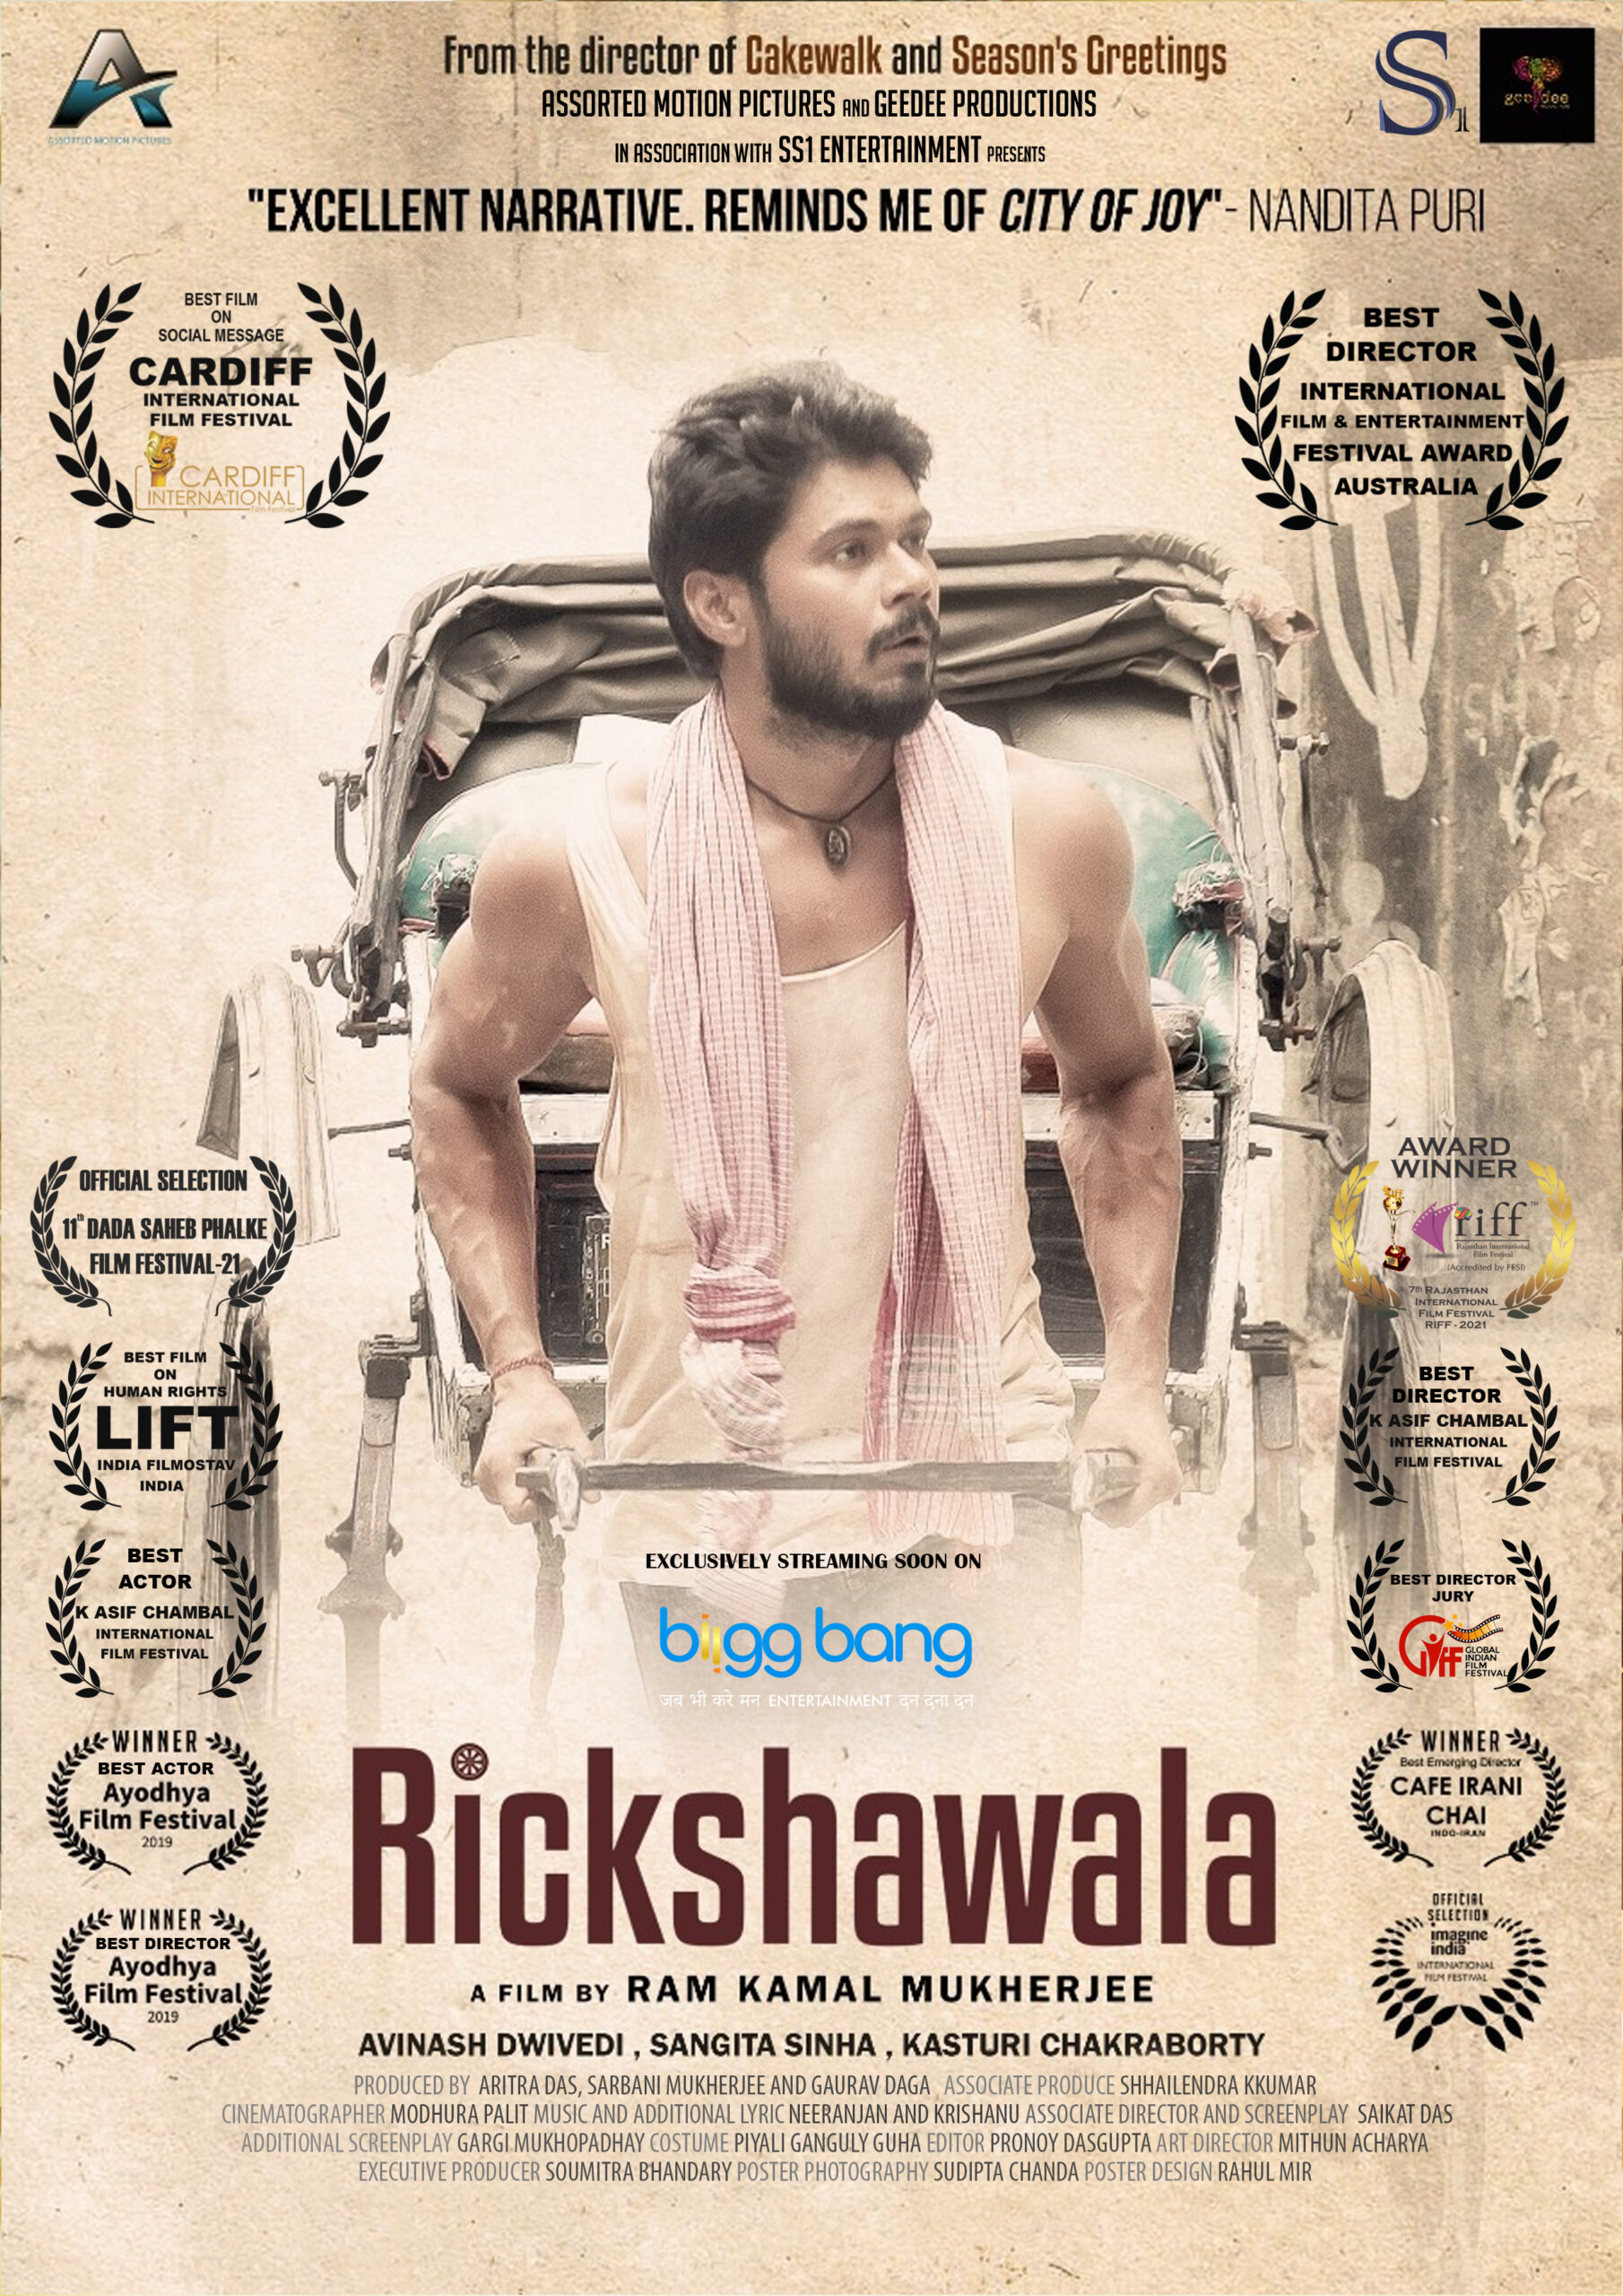 Assorted Motion Pictures's Rickshawala to premier on BIIGGBANG